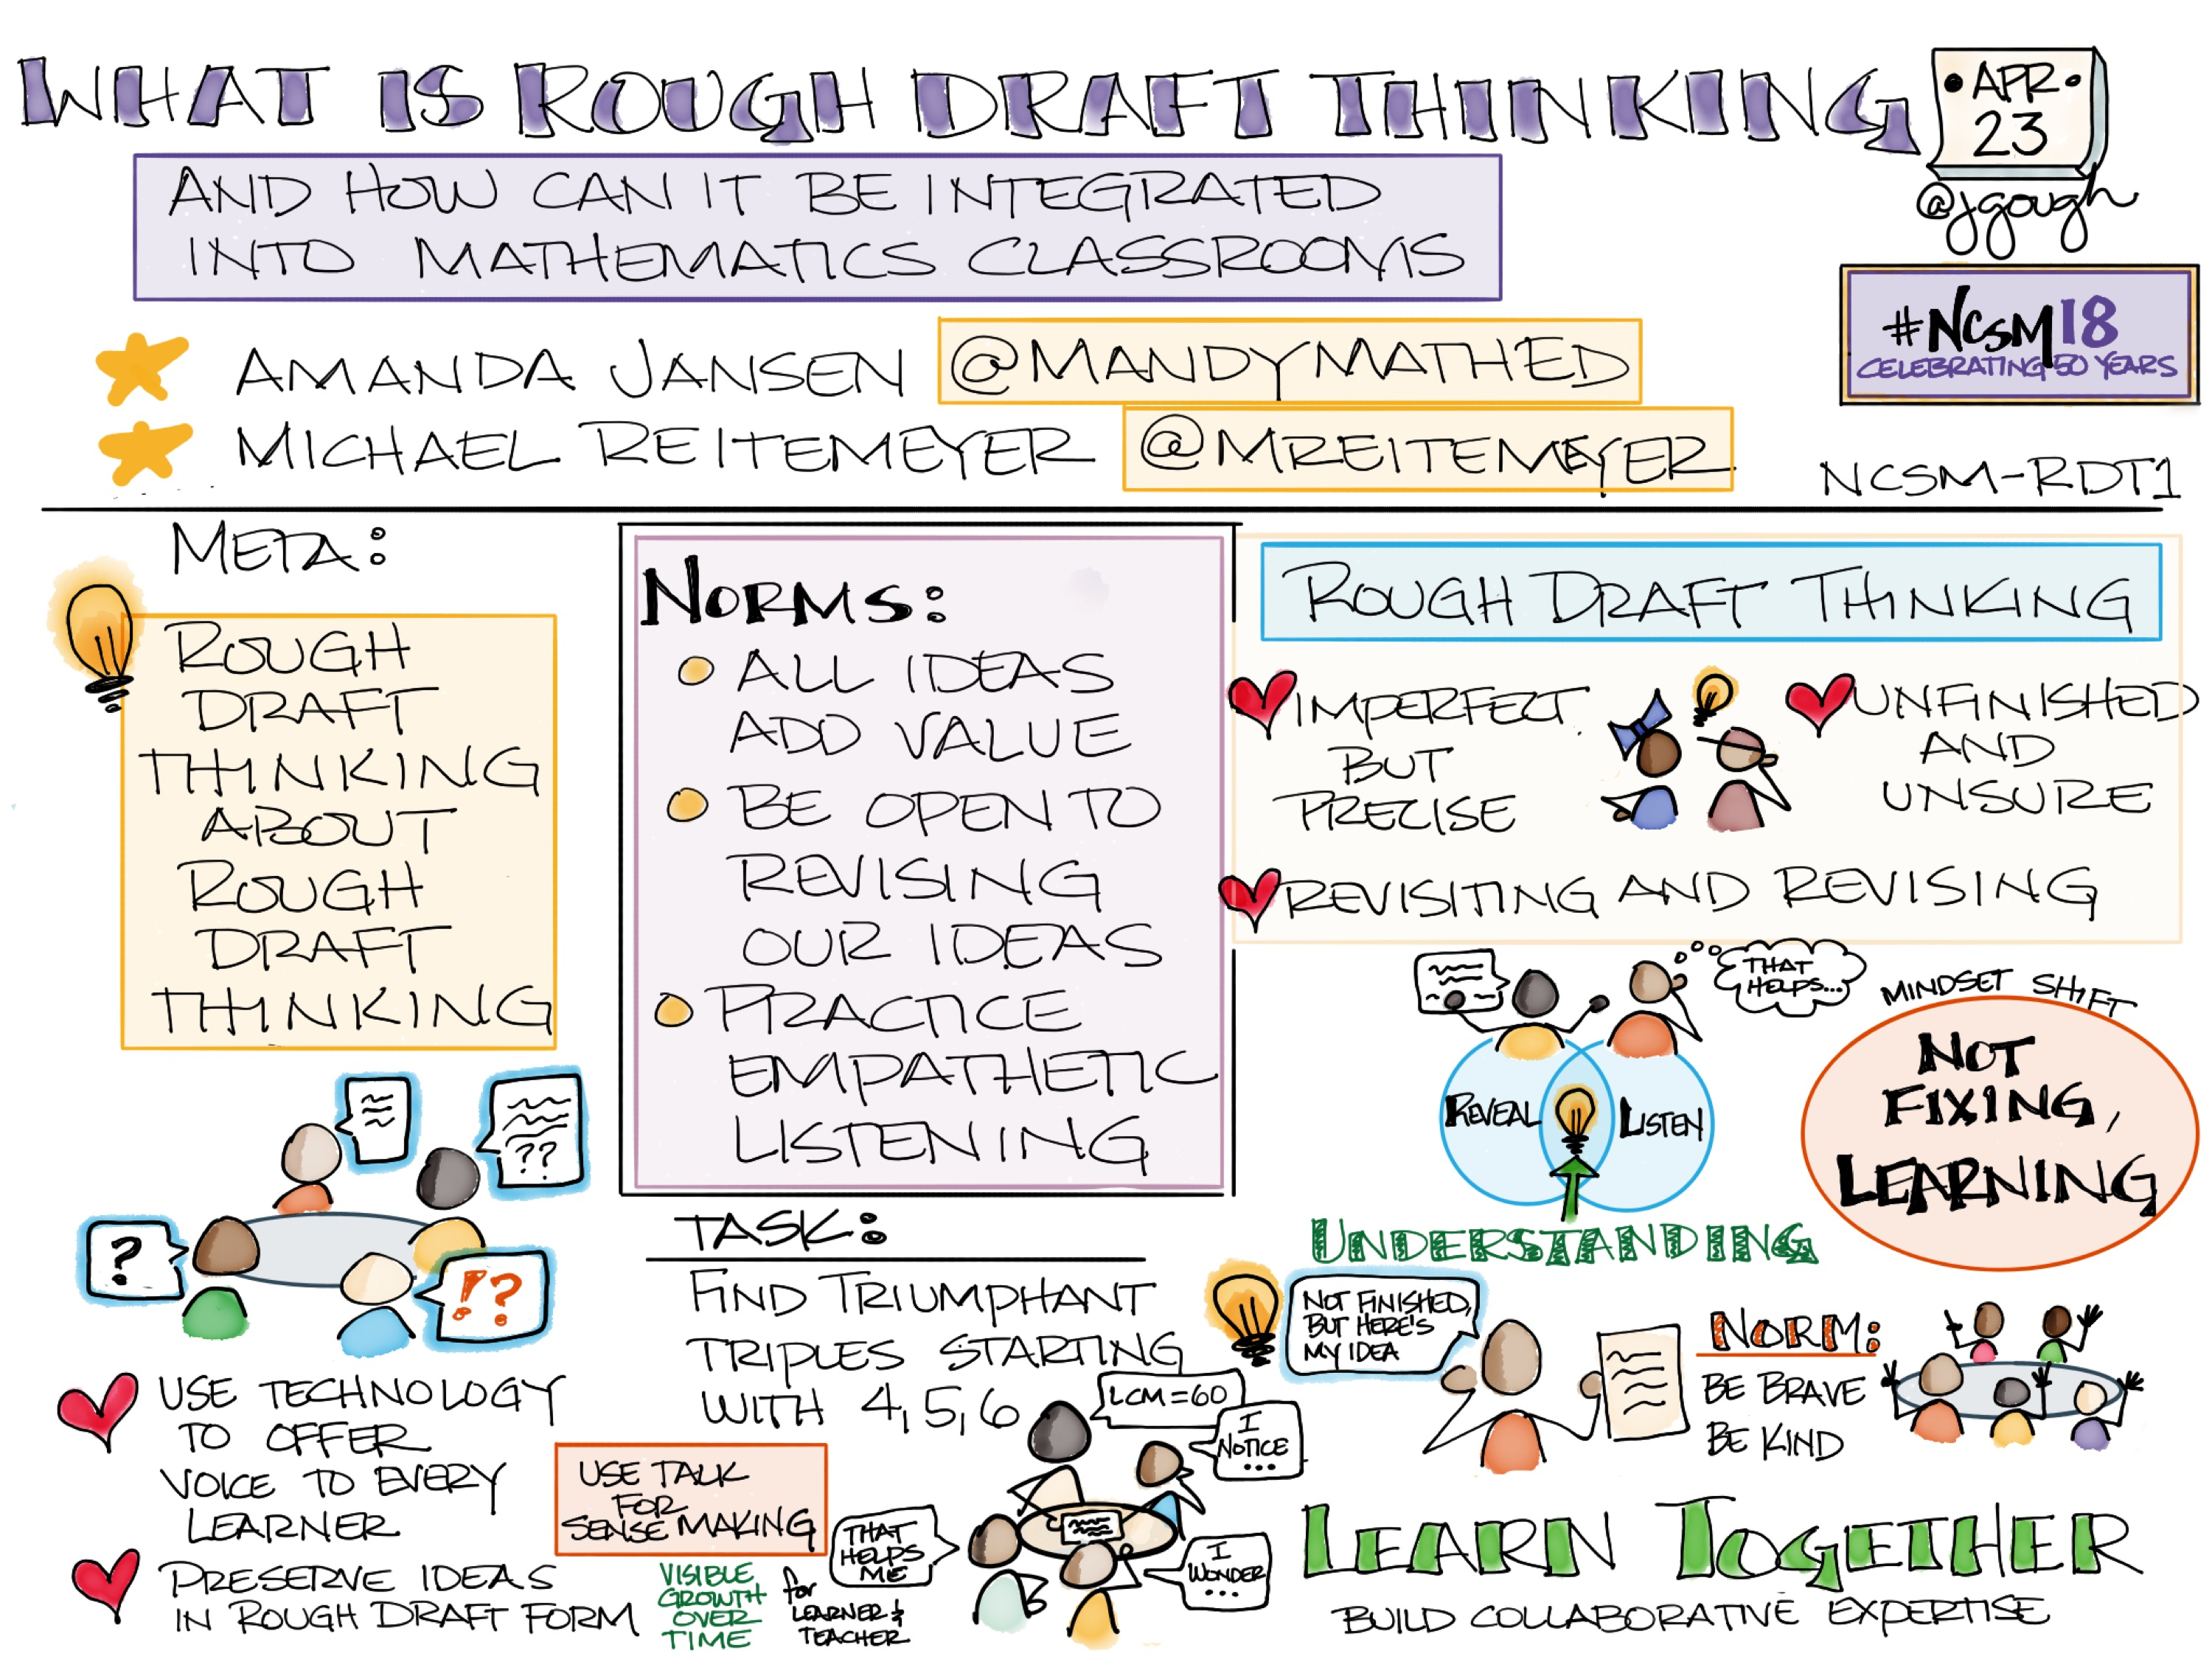 What is Rough Draft Thinking and how can it be integrated into Mathematics Classrooms? @MandyMathED @MReitemeyer #NCSM18